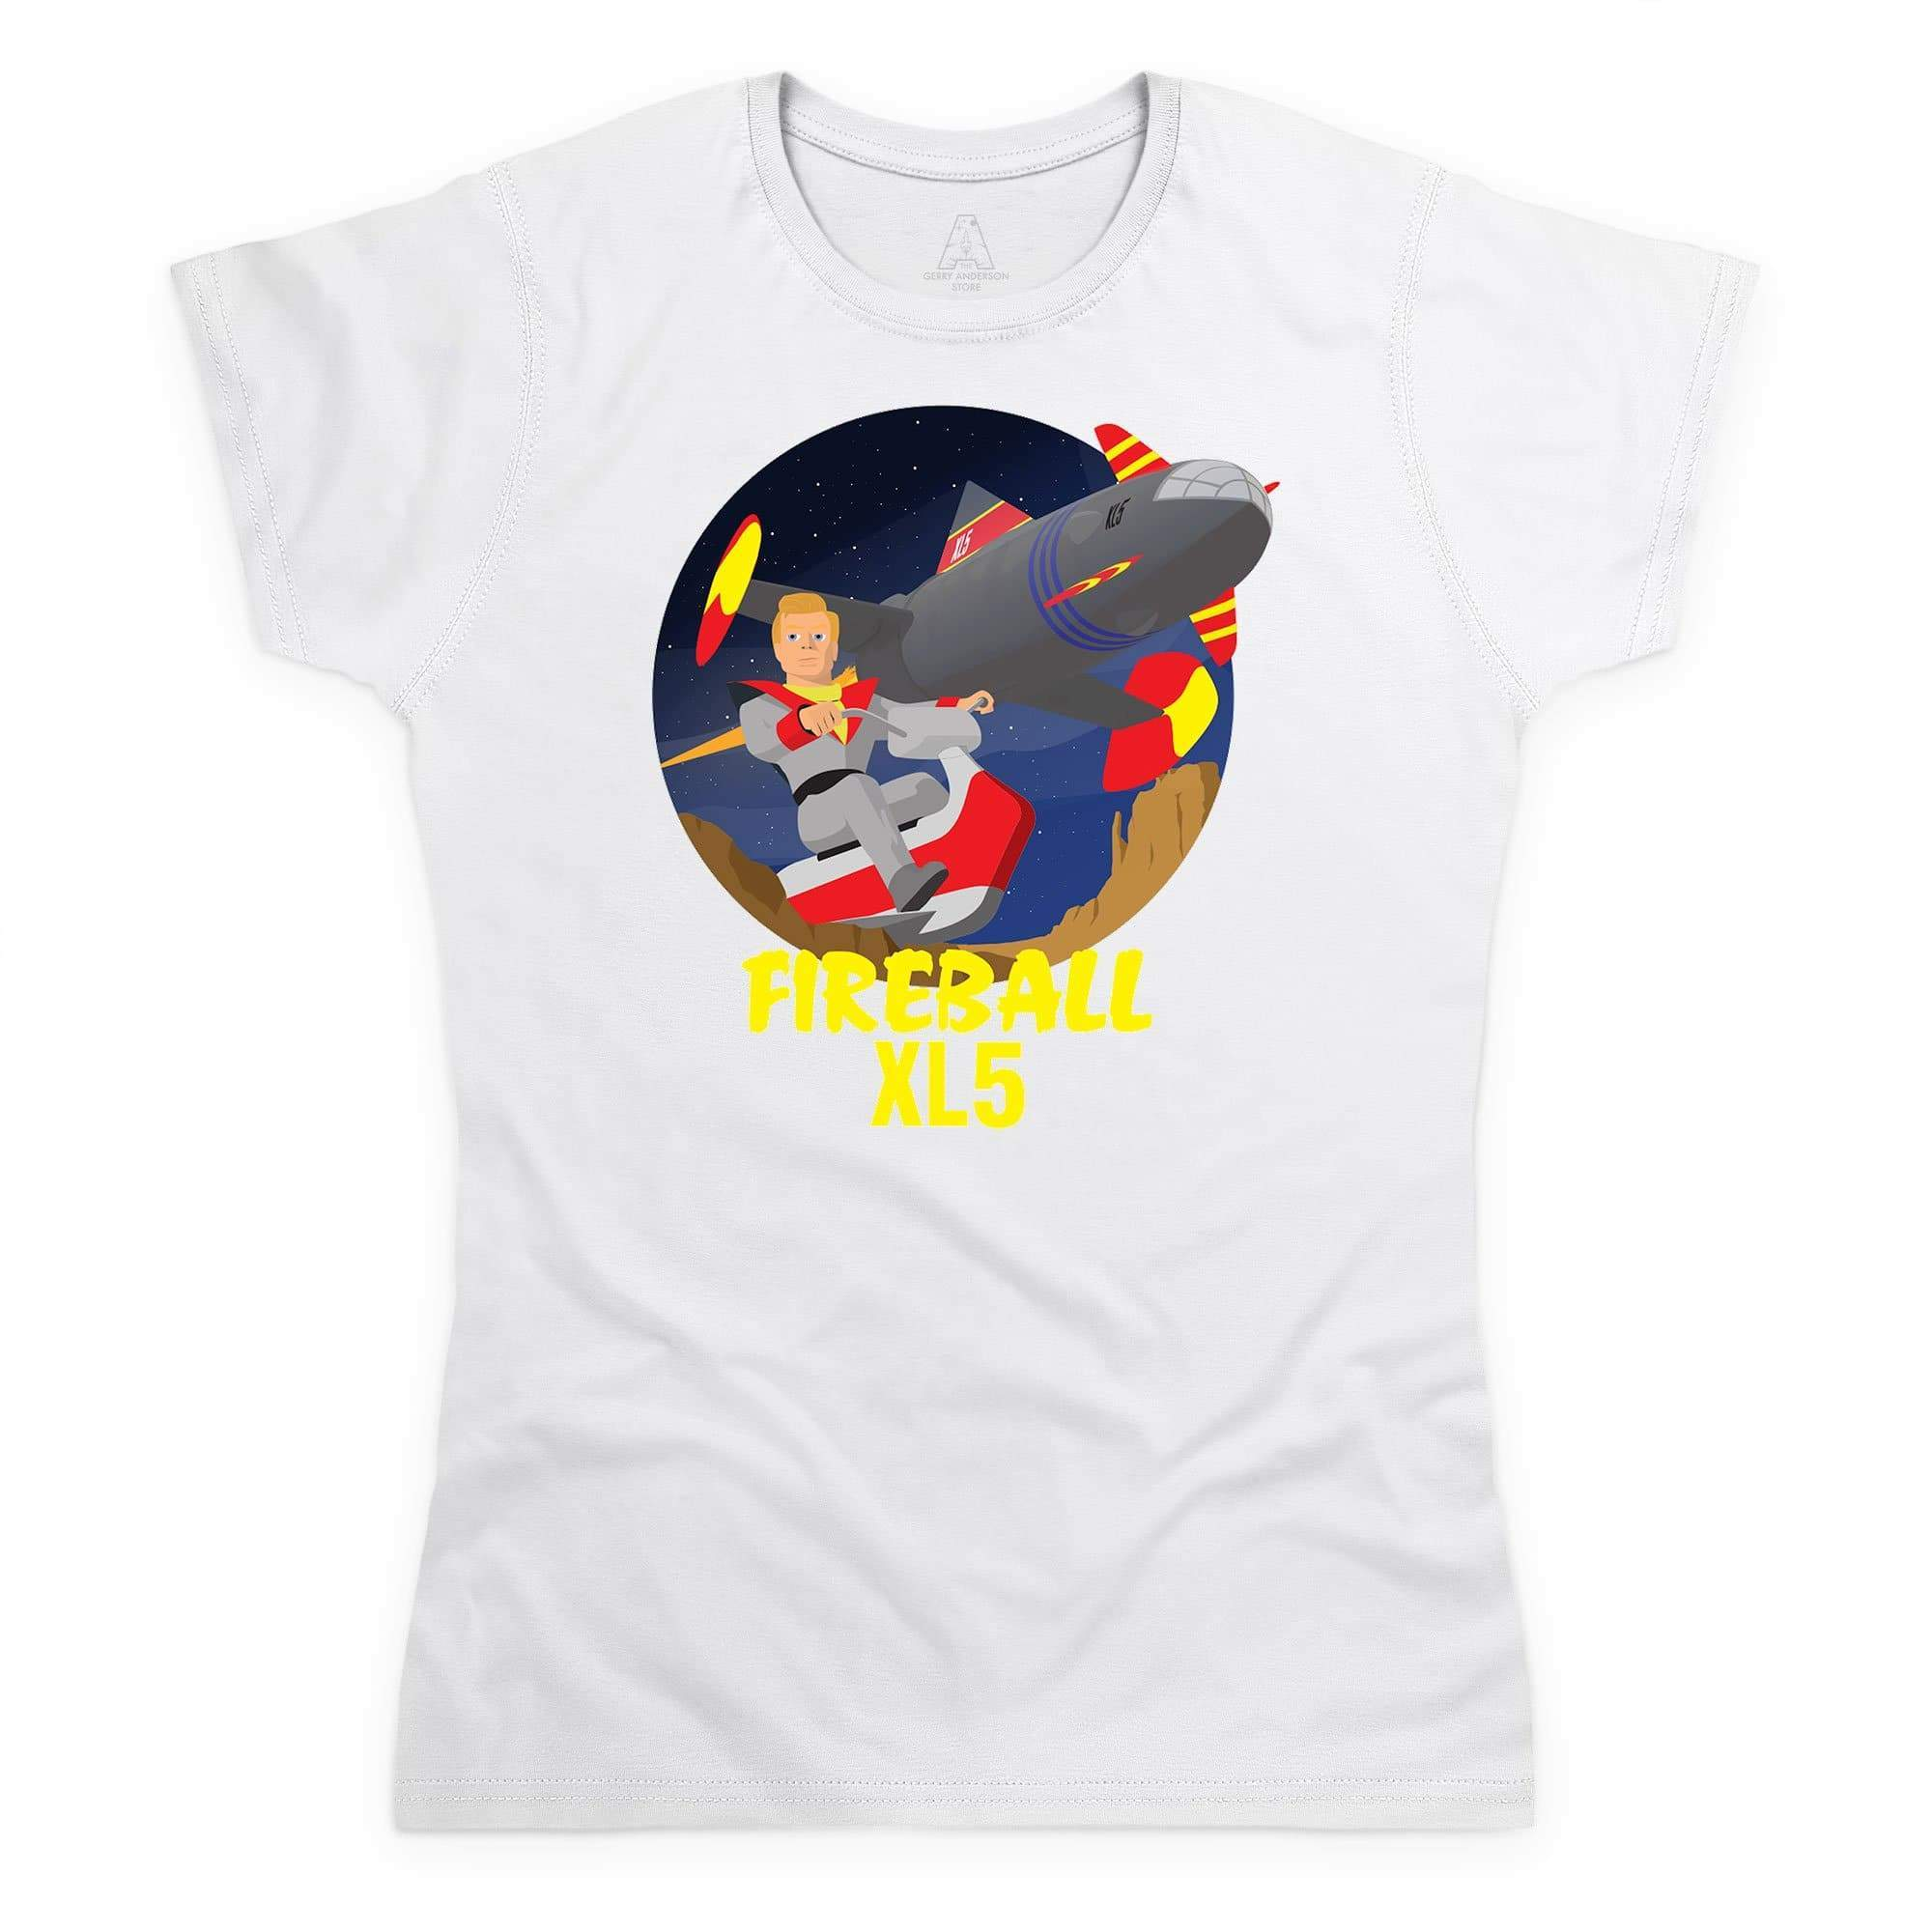 Fireball XL5 Women's White T-Shirt [Official & Exclusive] - The Gerry Anderson Store